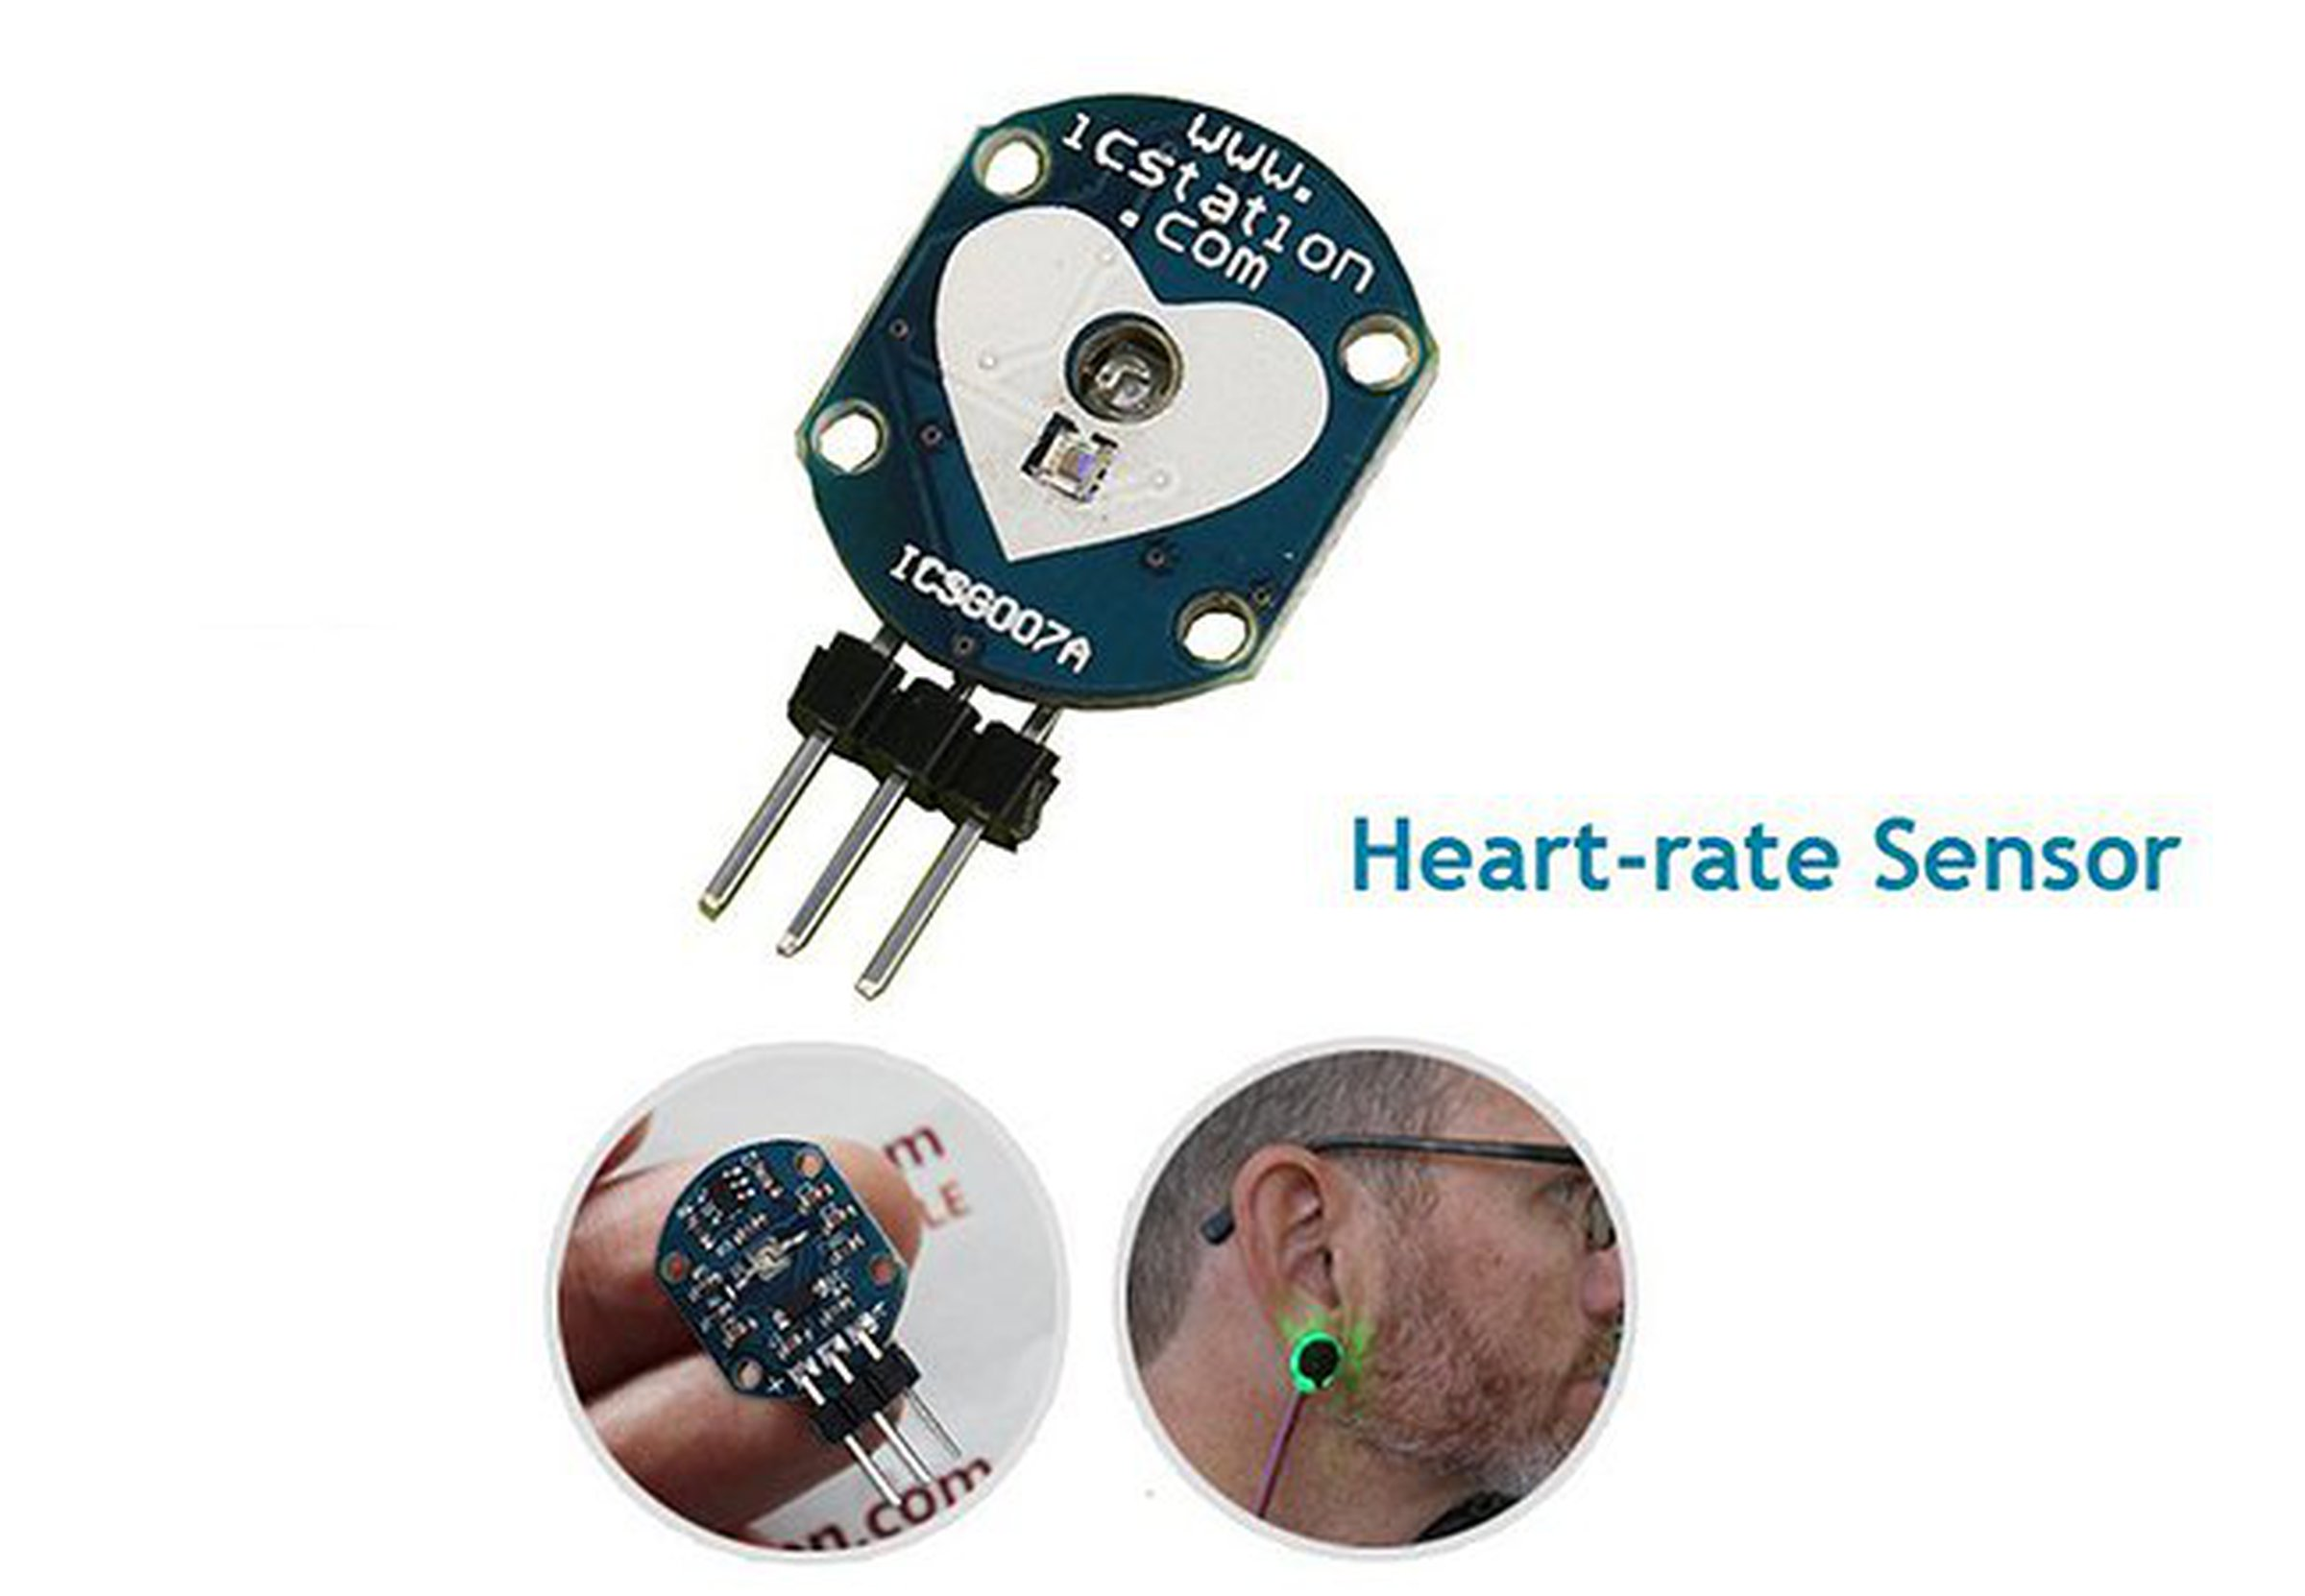 Pulse Heart Rate Sensor Module For Arduino3554 From Icstation On Monitor Alarm Circuit Homemade Projects 1